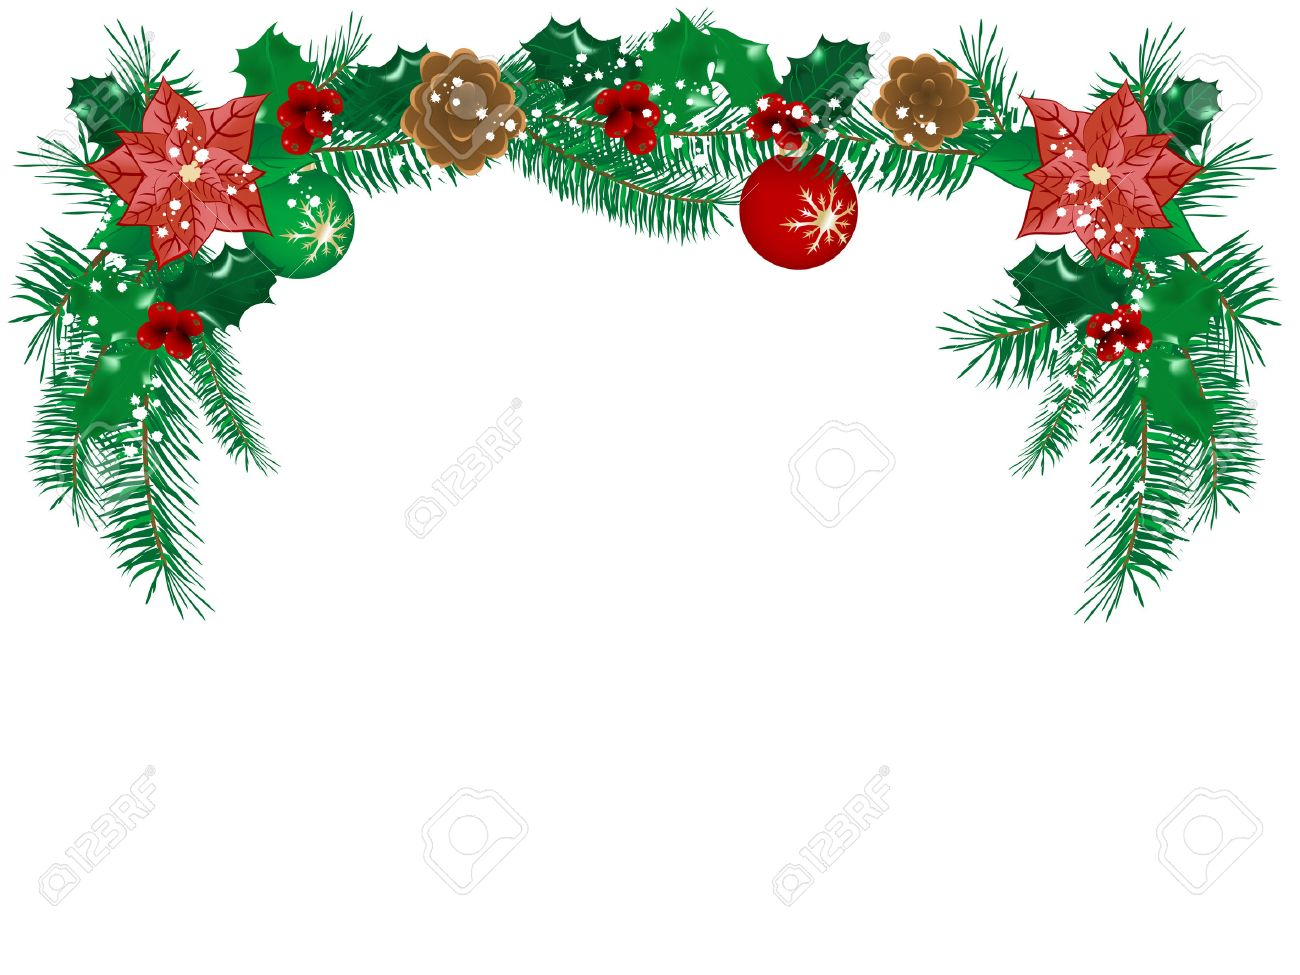 Christmas Flower Garland Vector Illustration Royalty Free Cliparts